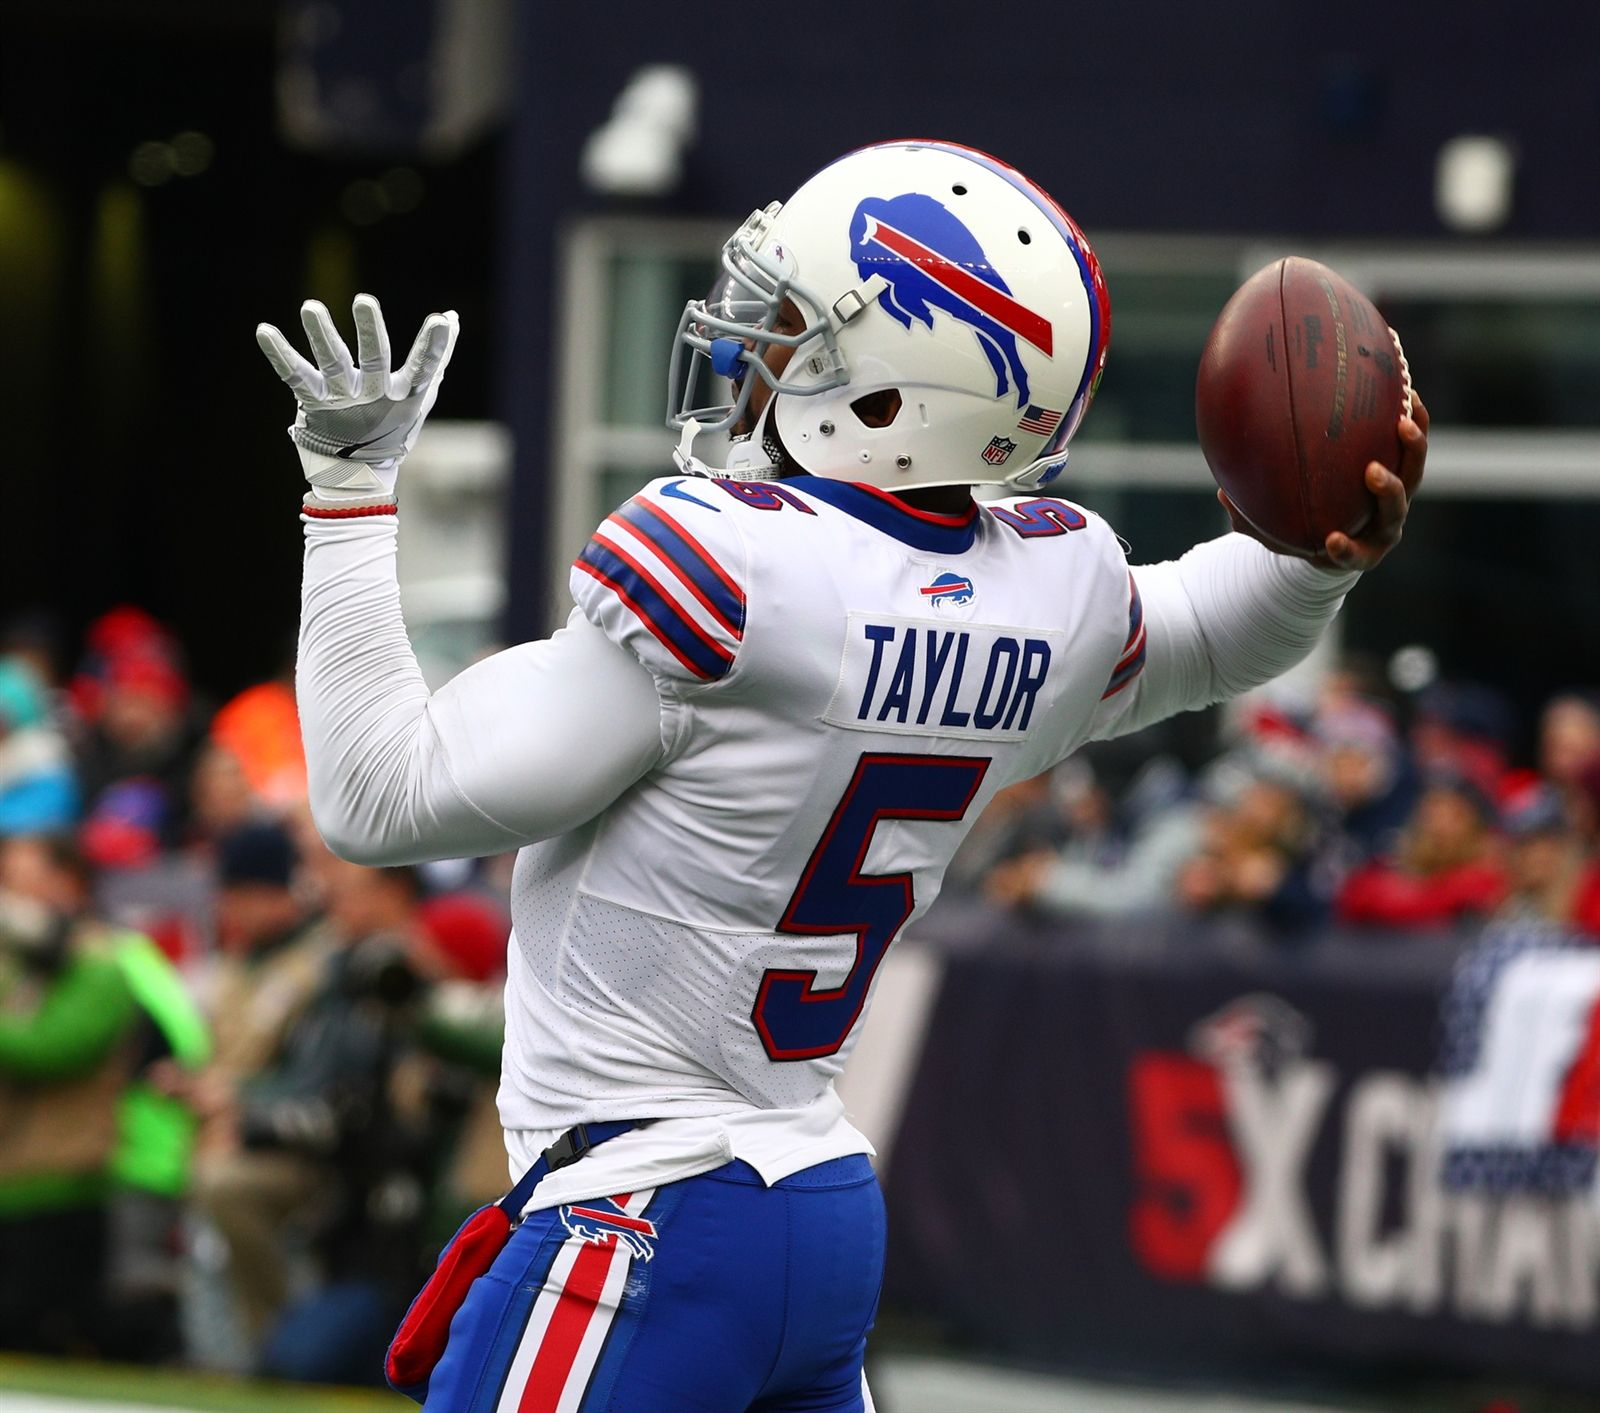 Bills quarterback Tyrod Taylor throws a pass during warmups on Sunday, Dec. 24, 2017, at Gillette Stadium in Foxborough, Mass.